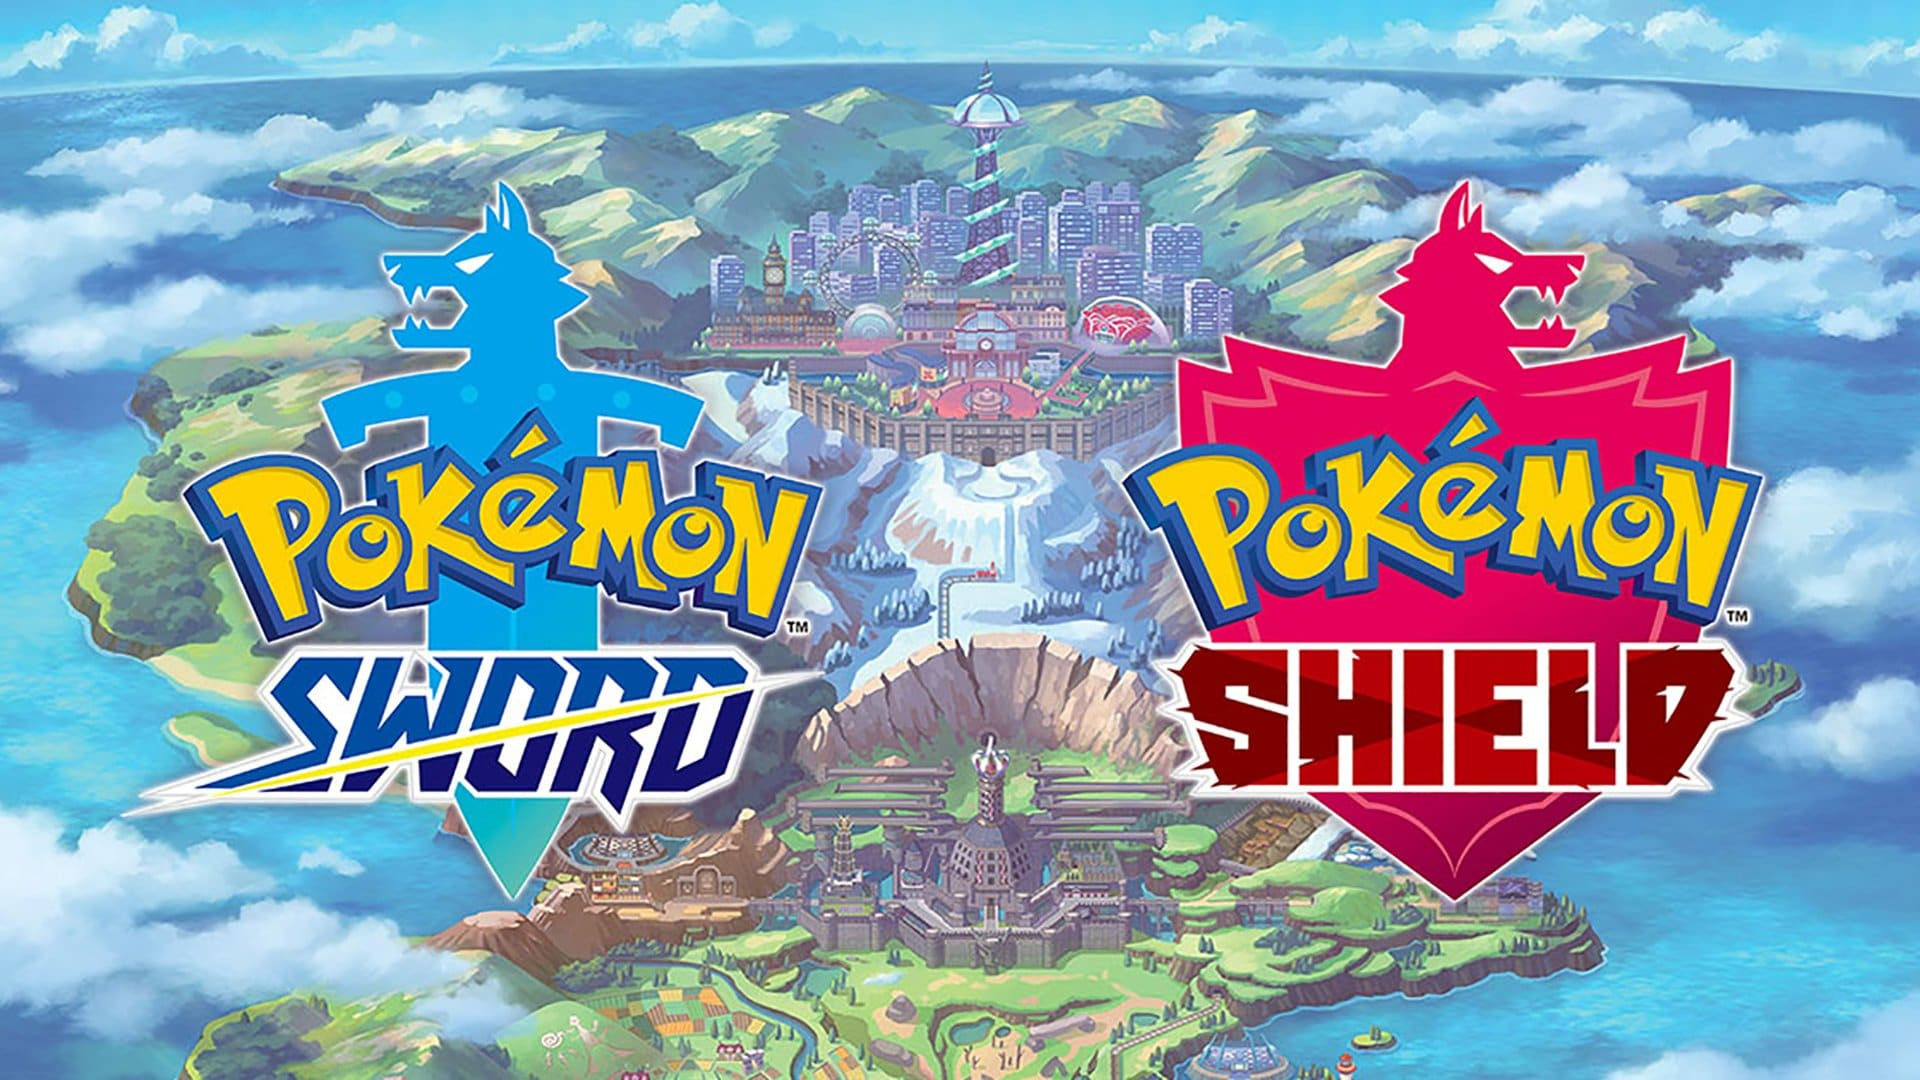 Pokemon Sword and Shield – New Trailer; New Pokemon and Gym Leaders